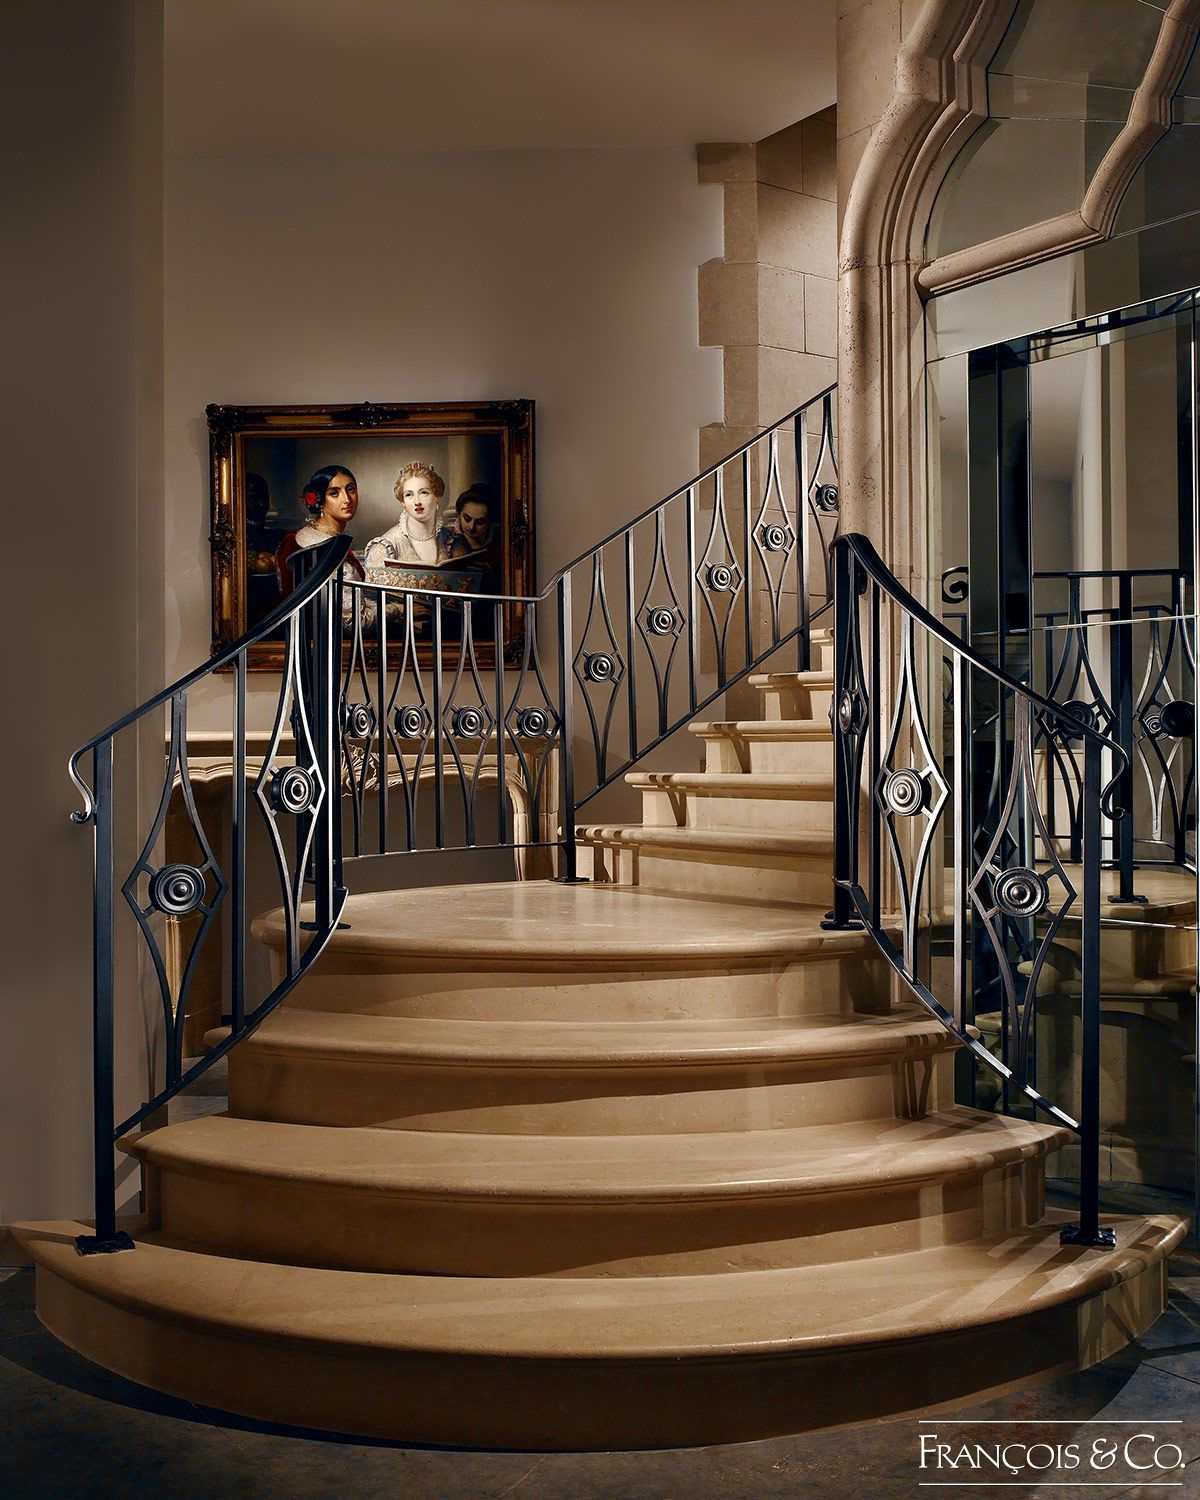 Stair Designs Railings Jam Stairs Amp Railing Designs: Structures - François & Co.